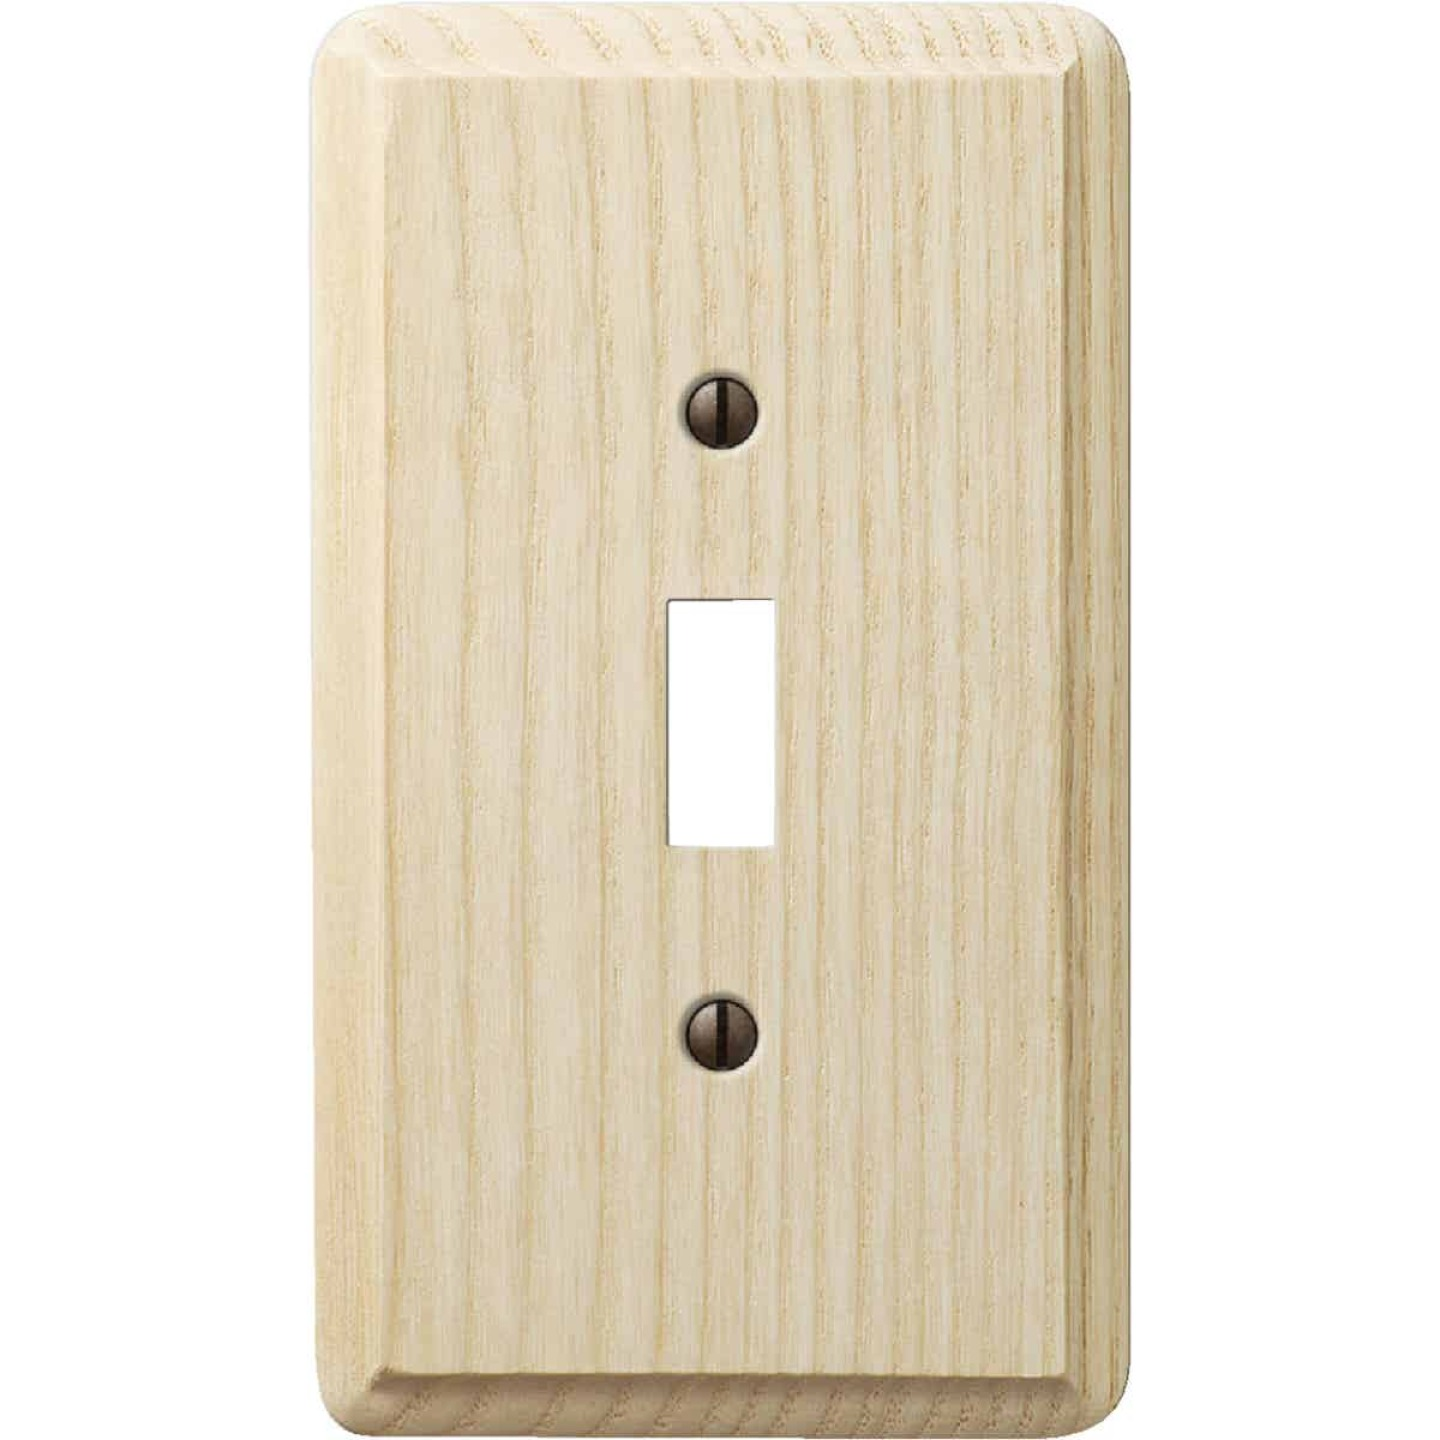 Amerelle 1-Gang Solid Ash Toggle Switch Wall Plate, Unfinished Ash Image 1